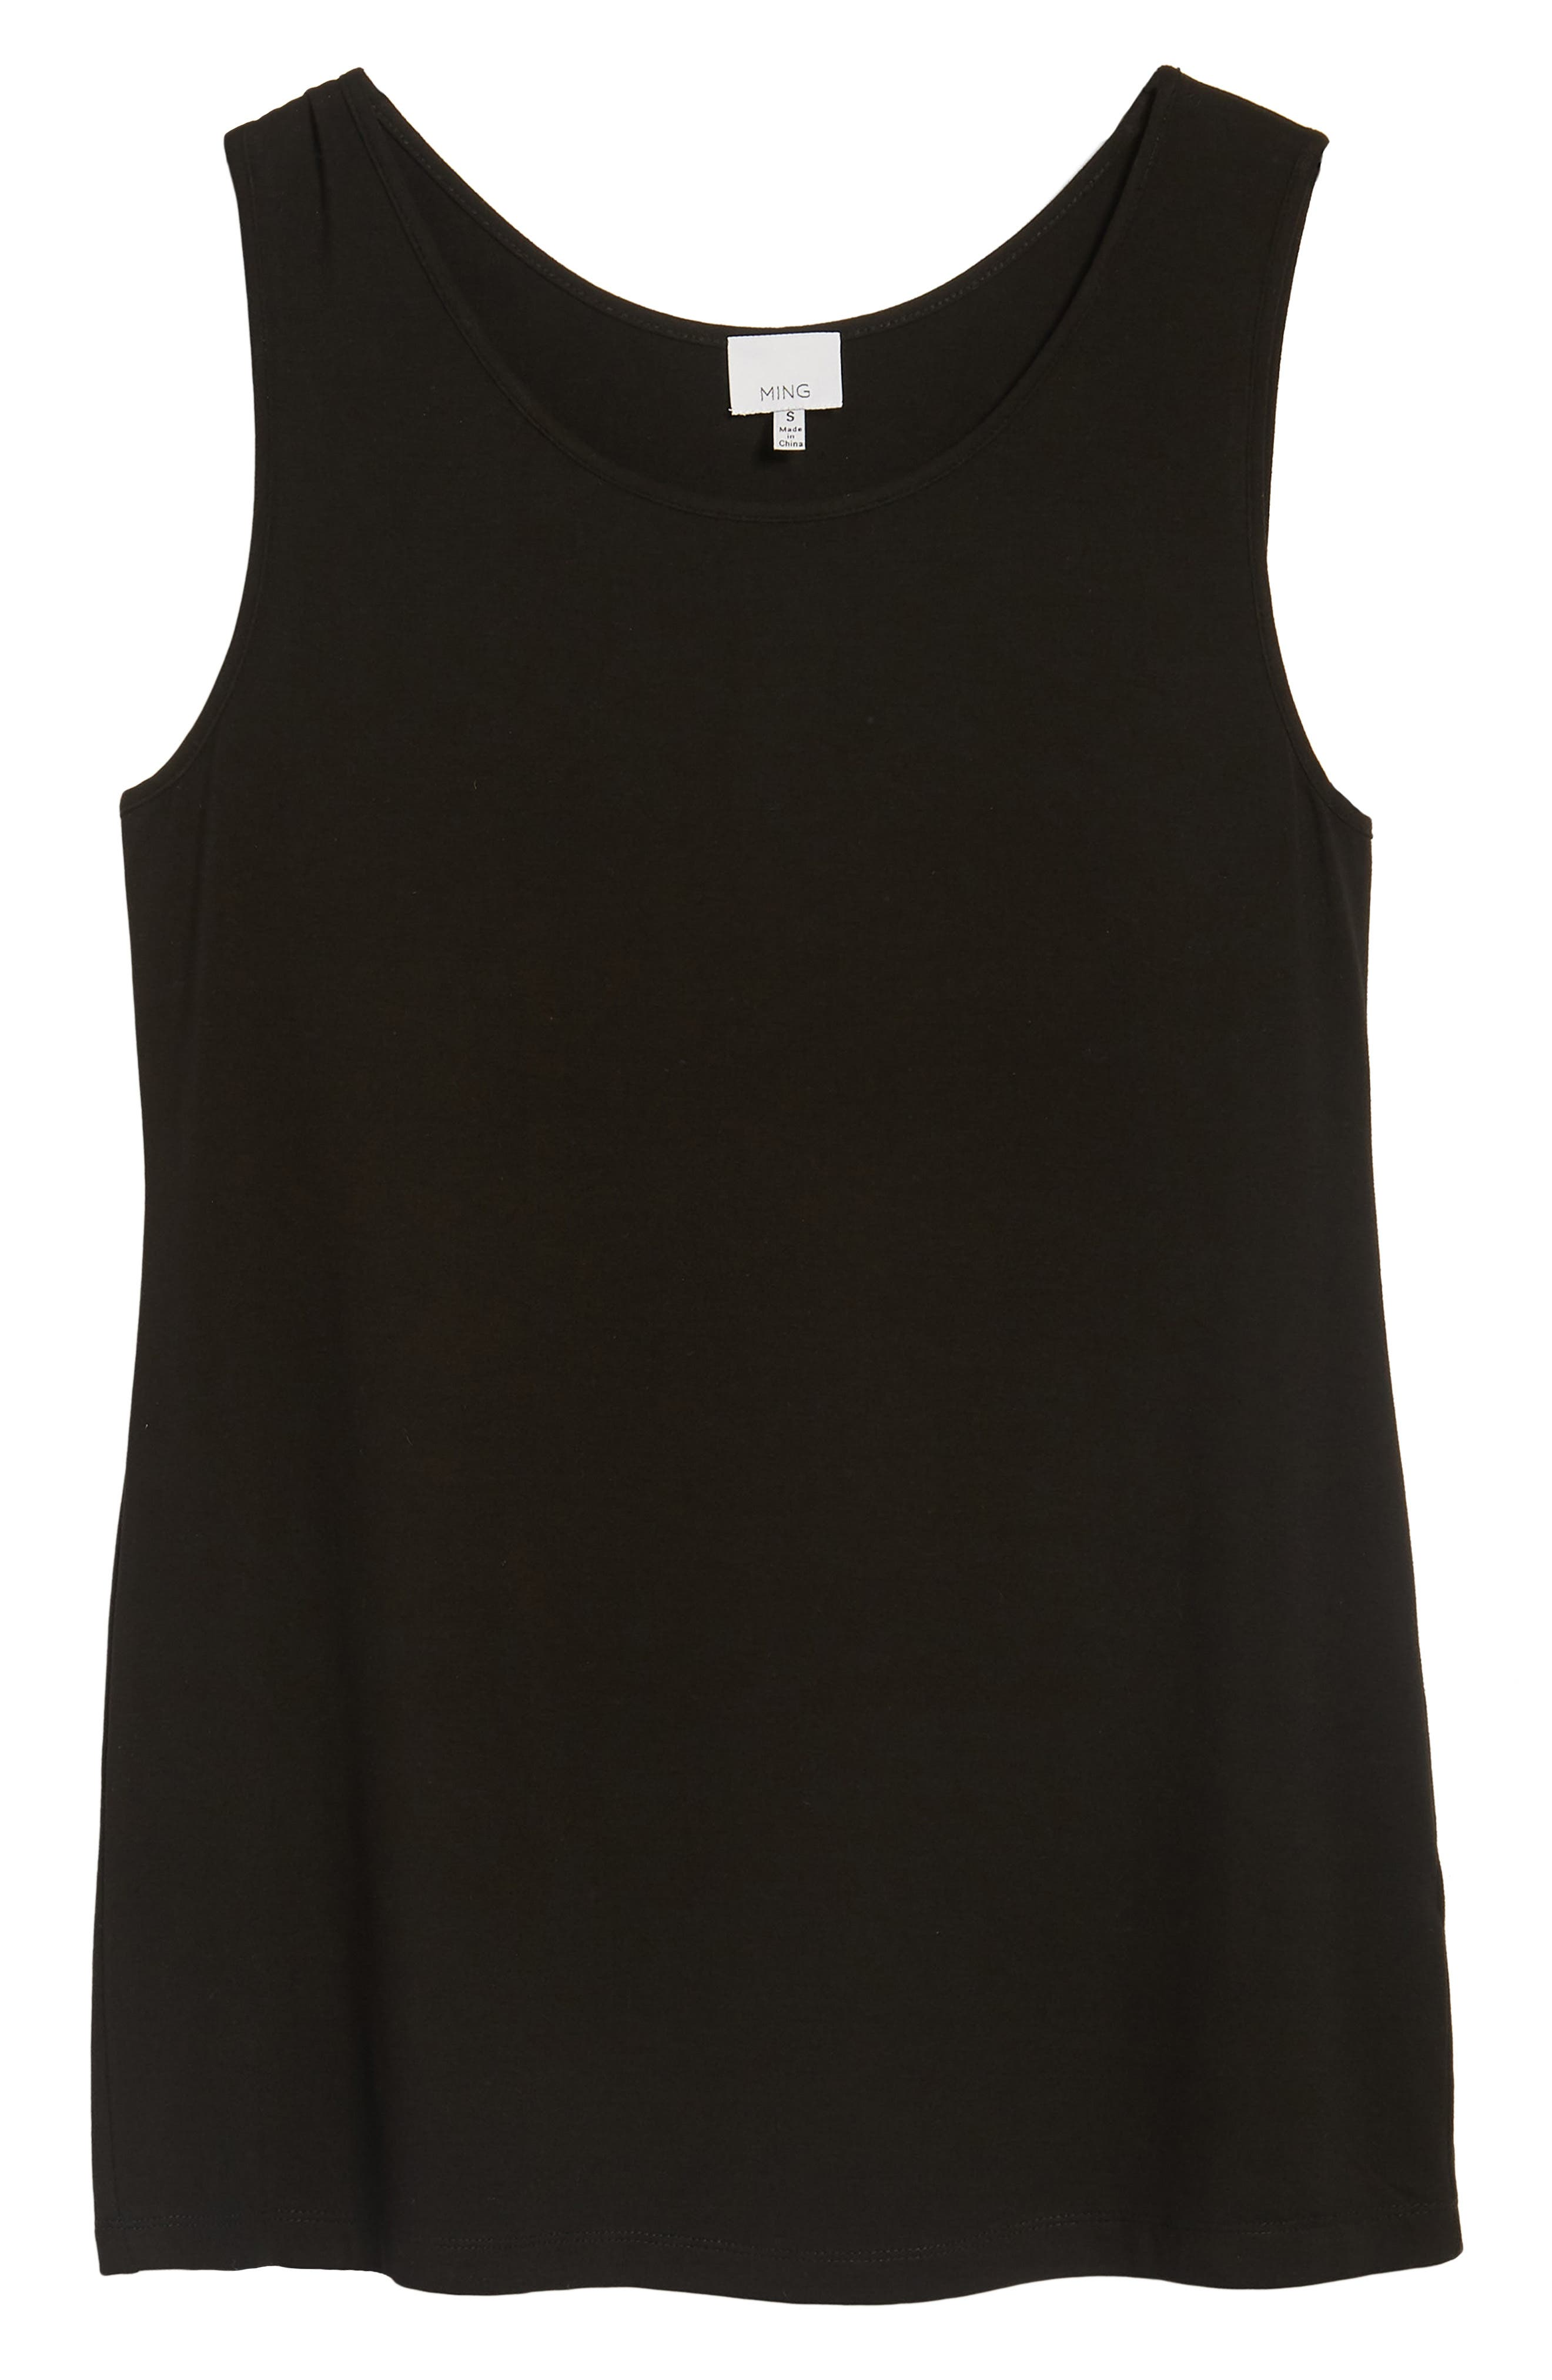 Mang Wang Jersey Tank,                             Alternate thumbnail 6, color,                             BLACK